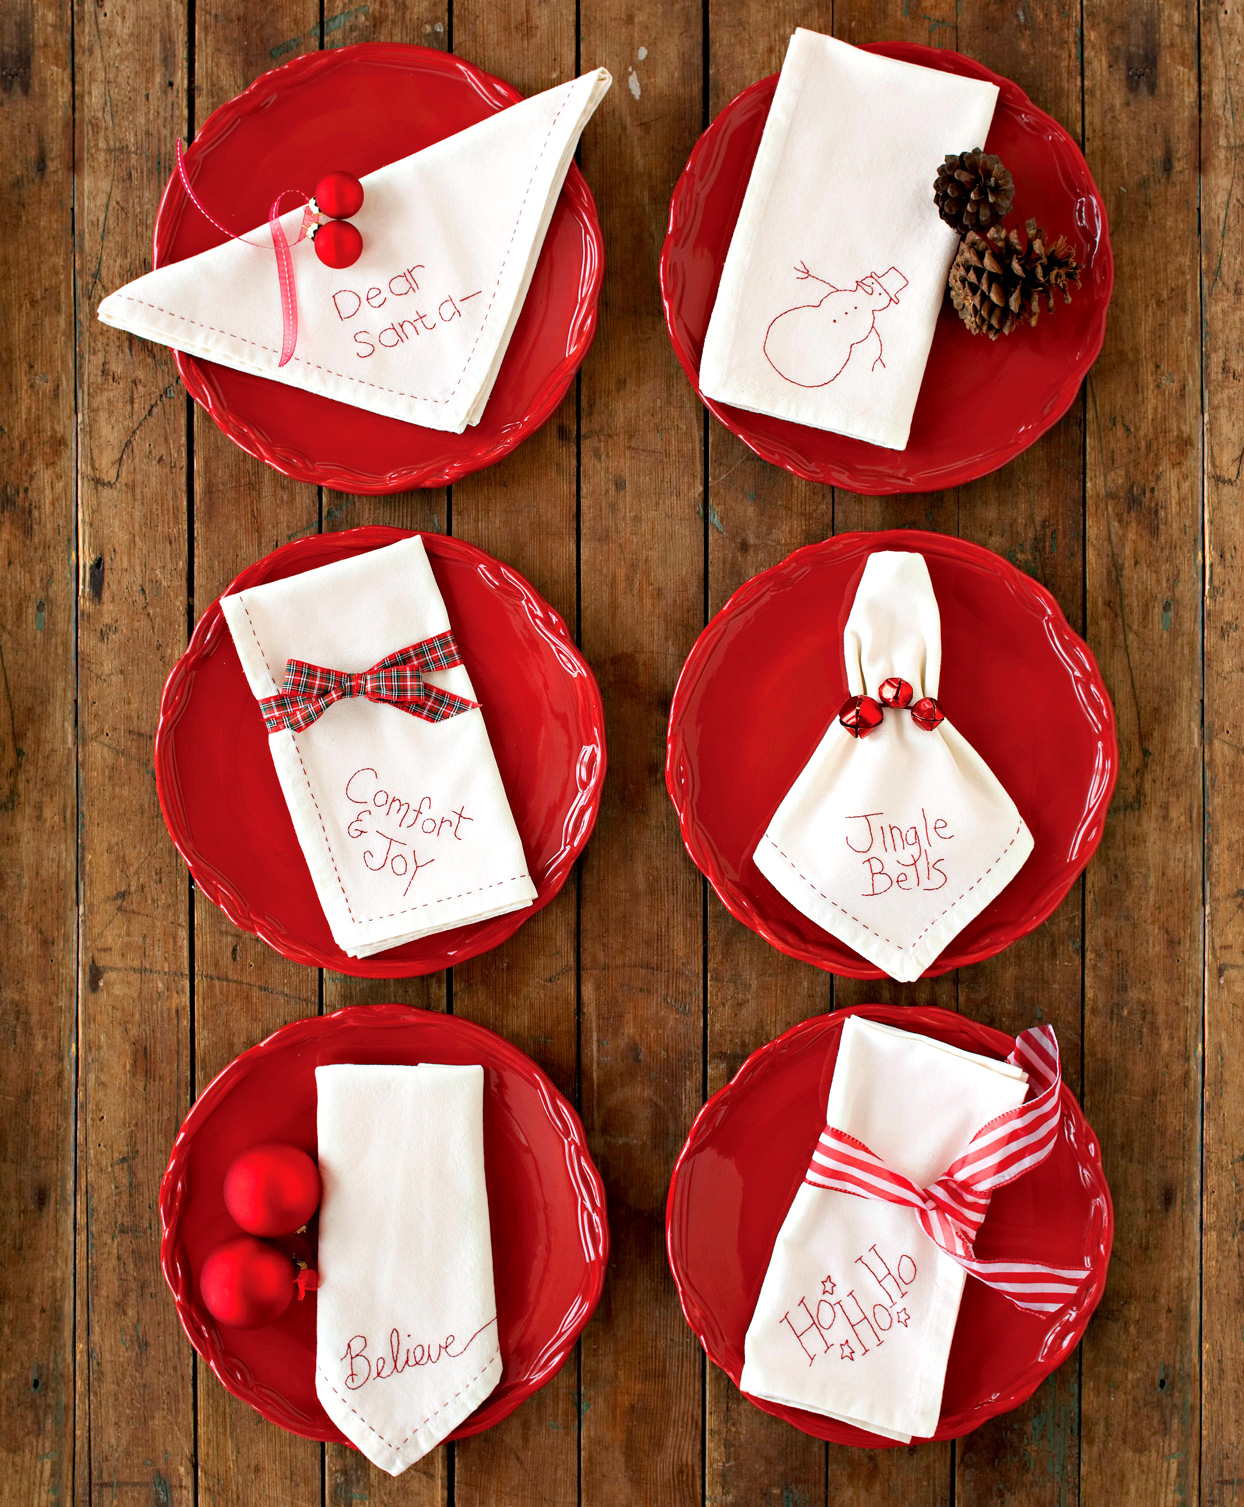 red plates with holiday napkins